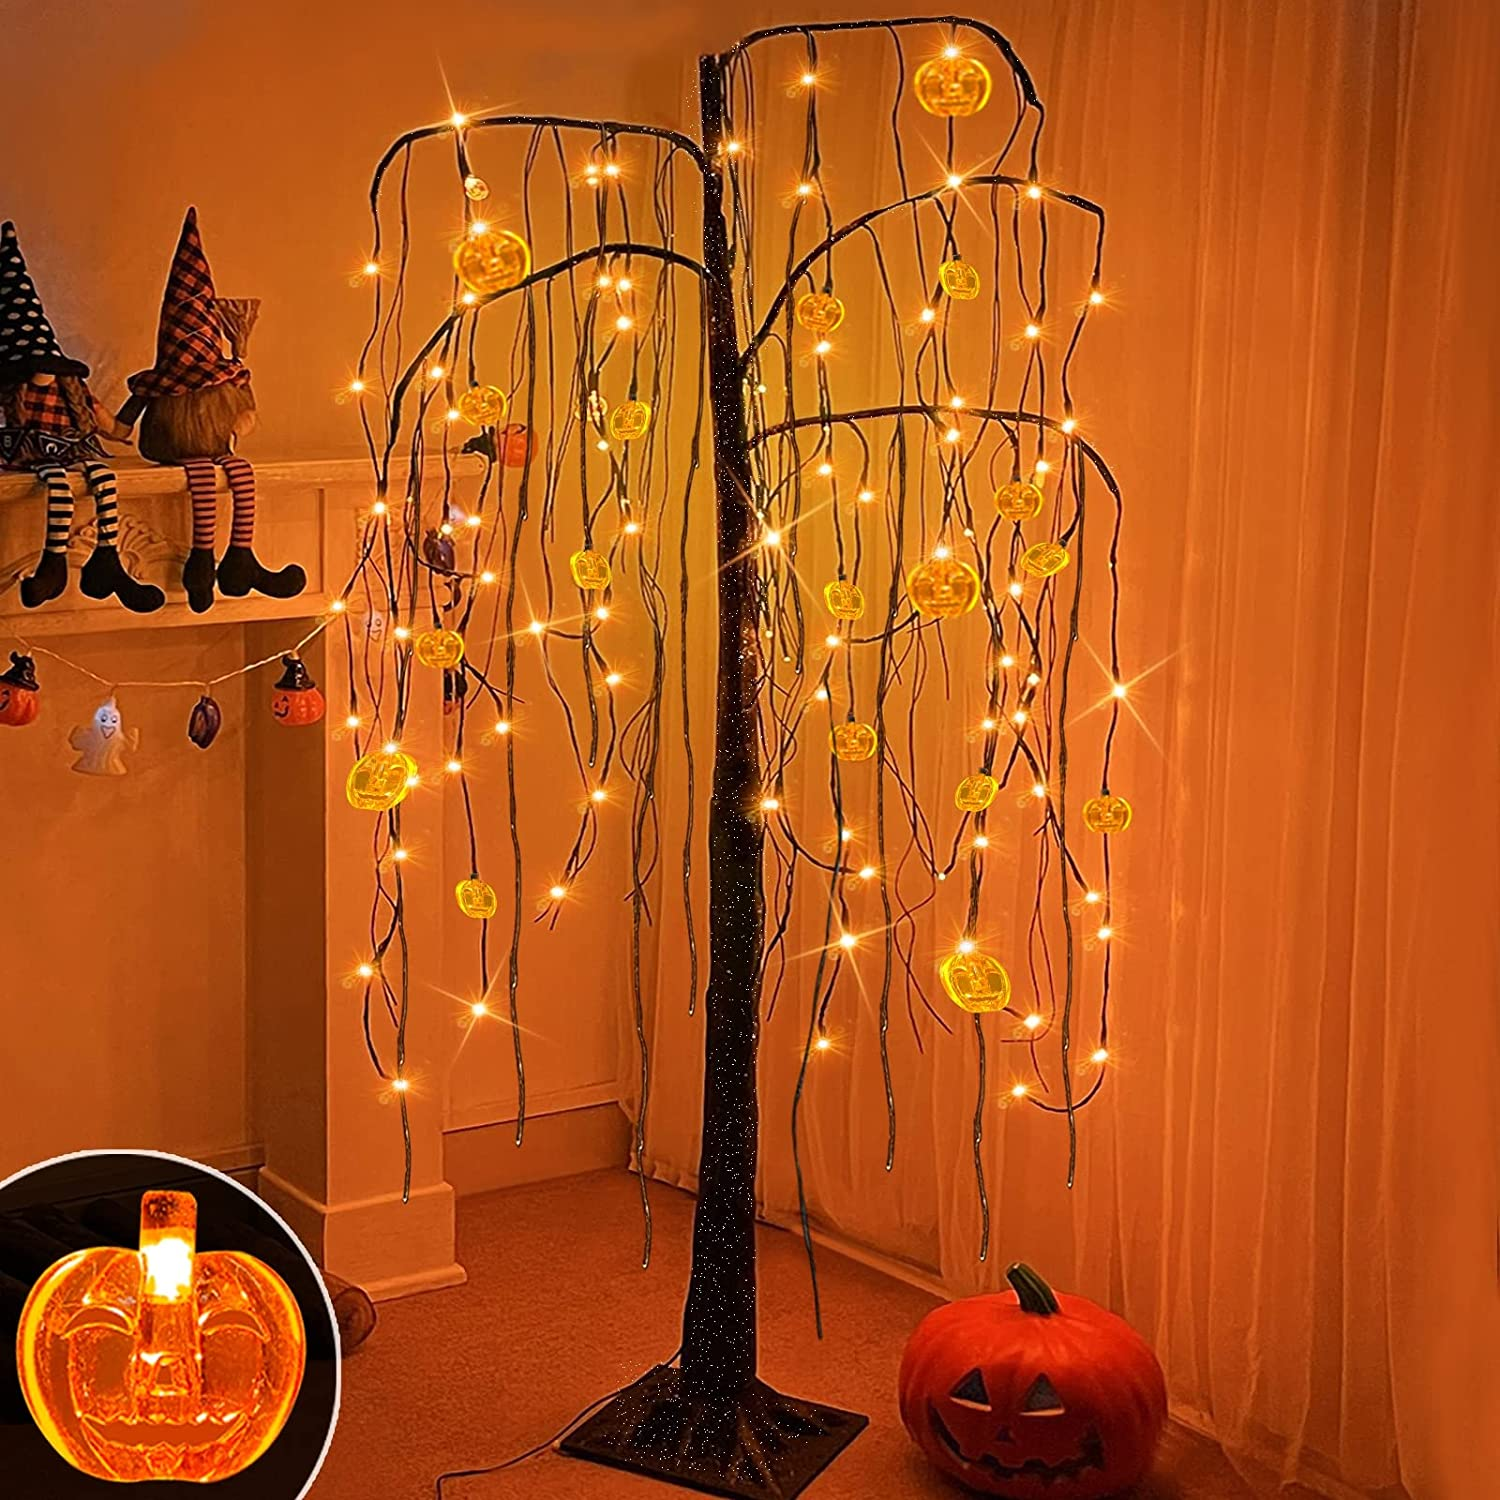 TURNMEON 5 FT Prelit Halloween Willow Tree Decor with Timer, 108 Led & Pumpkin Lights Glittered Spooky Black Artificial Tree Scary Ornaments Halloween Decorations Indoor Outdoor Home(Plug in/4 Stakes)